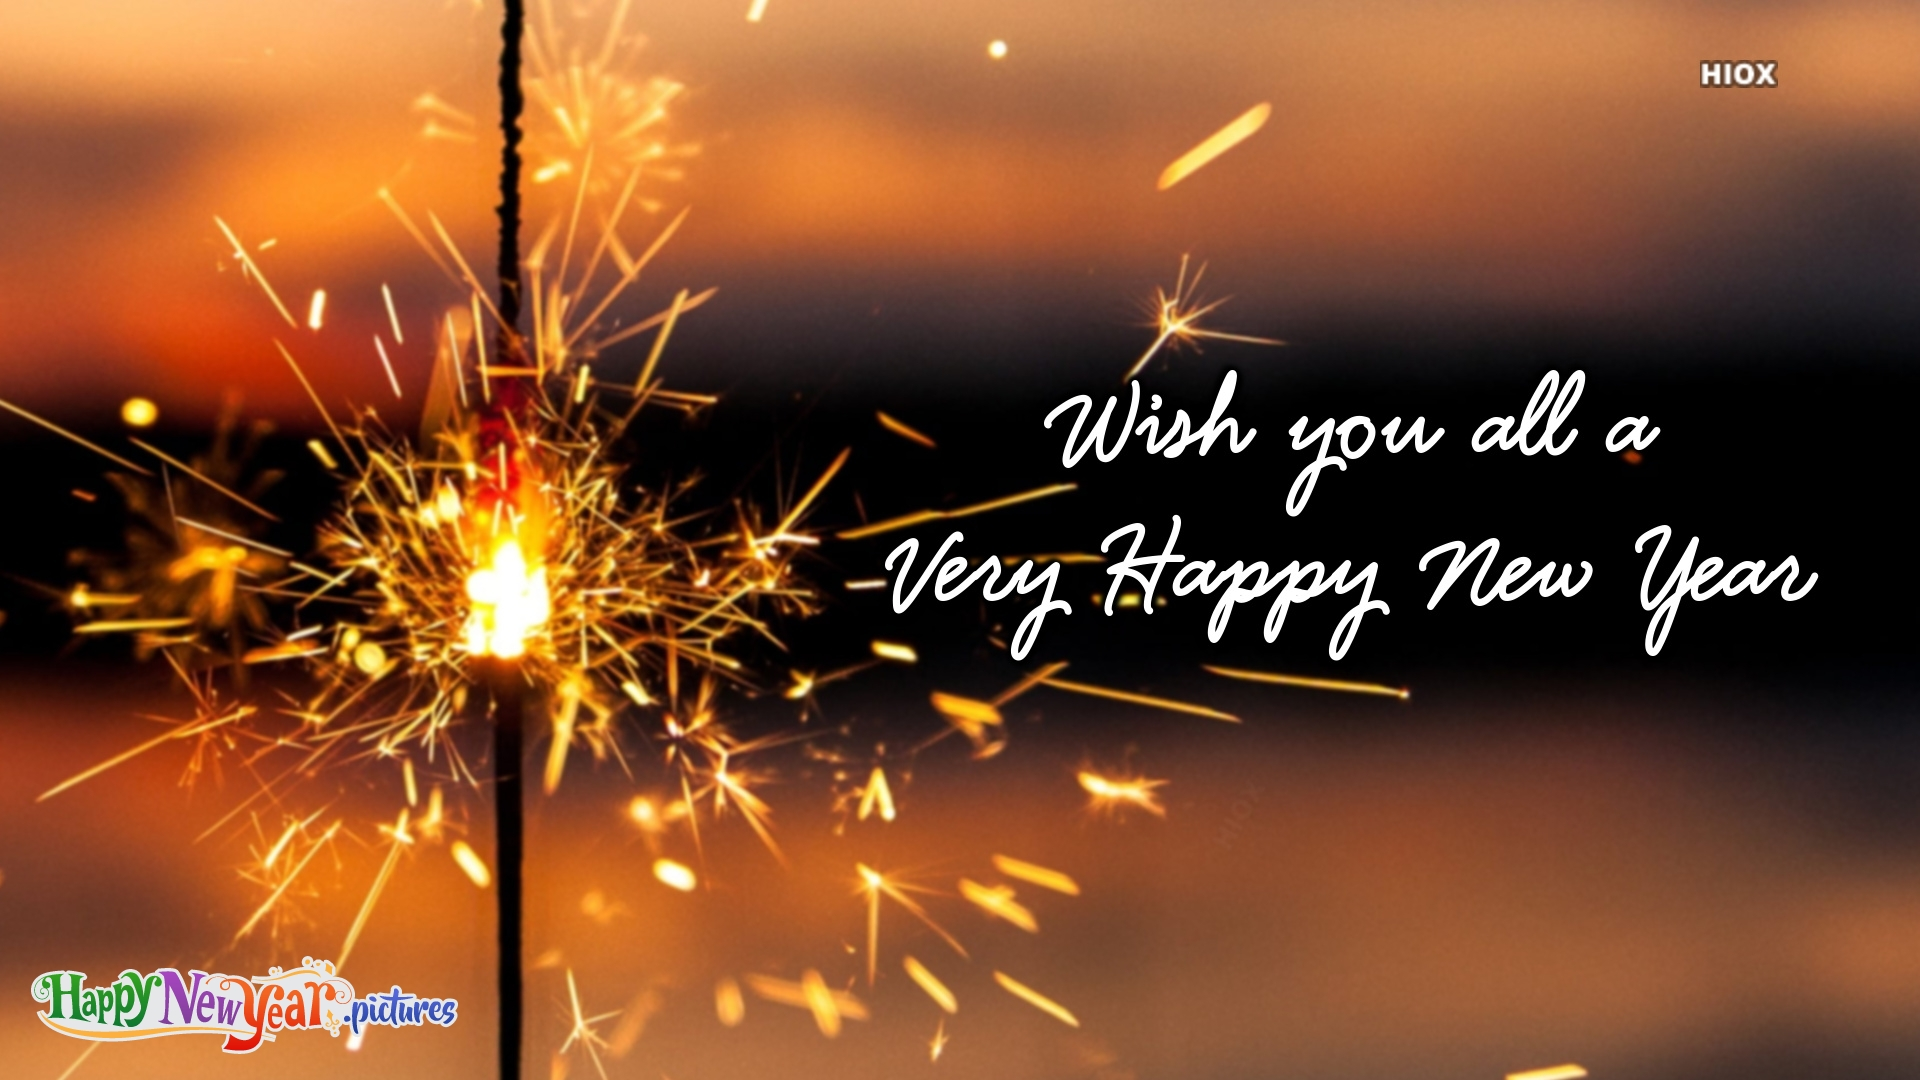 Wish You All A Very Happy New Year